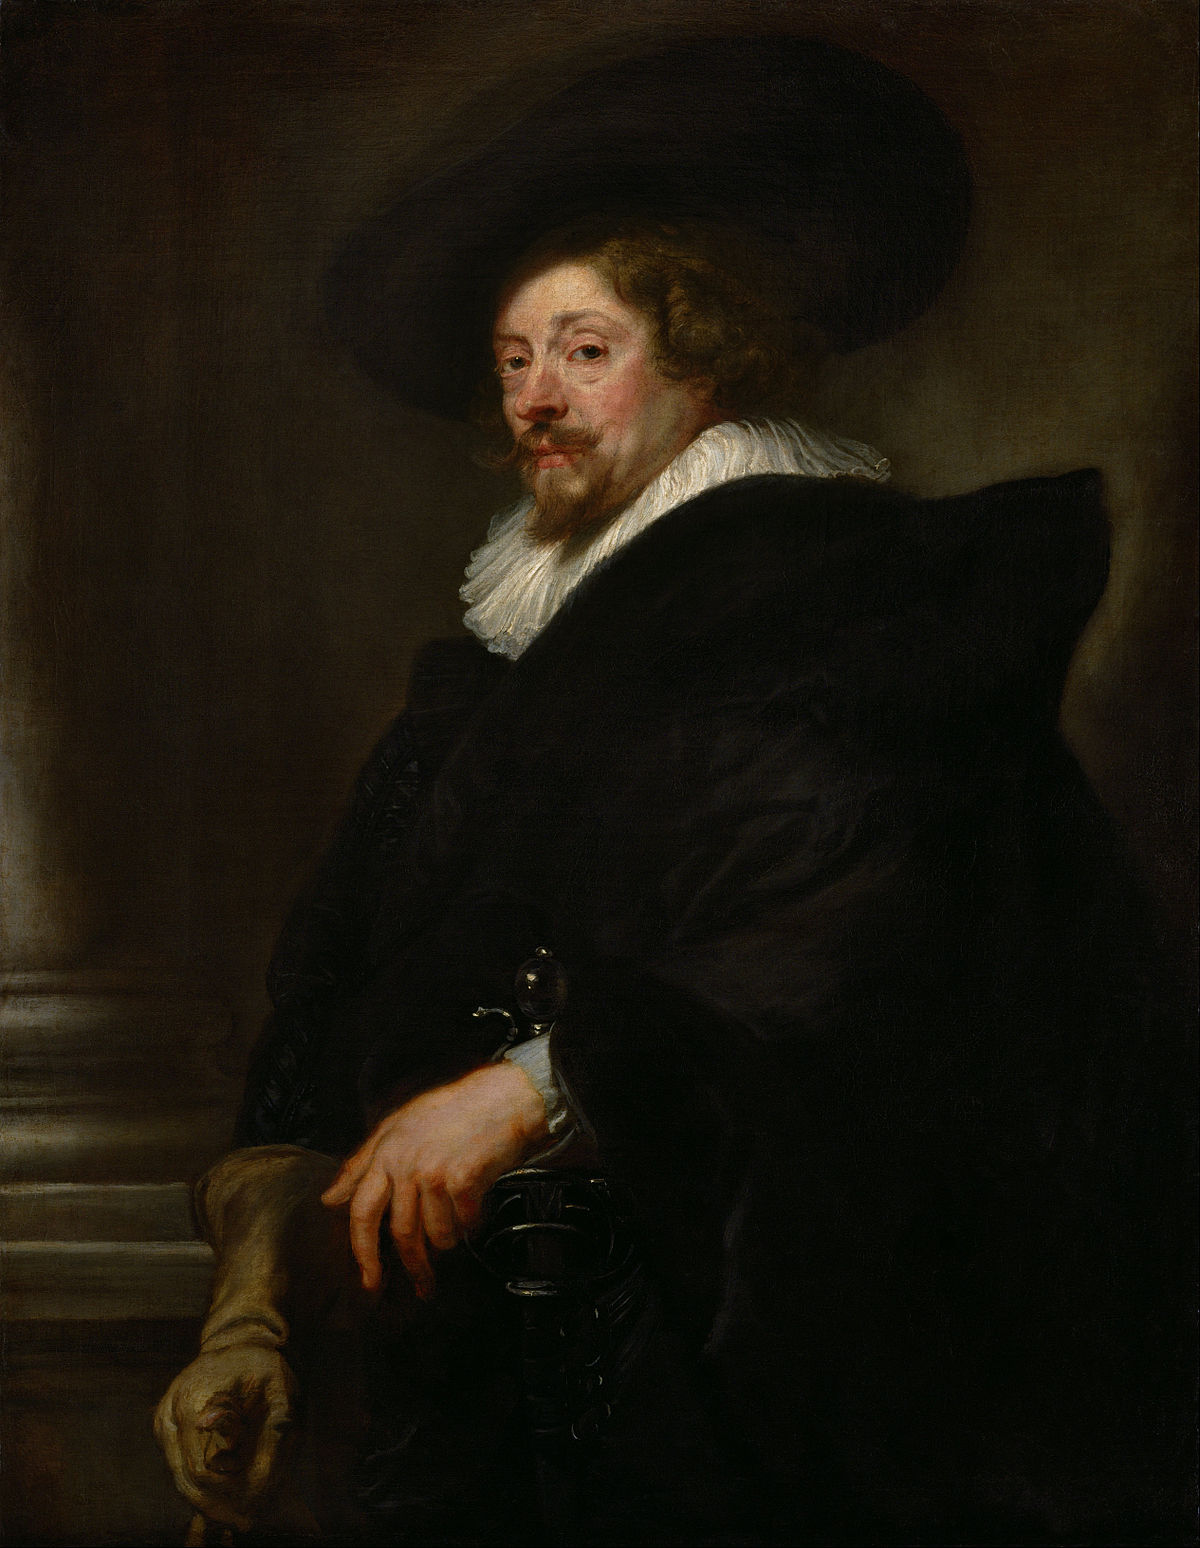 https://upload.wikimedia.org/wikipedia/commons/thumb/3/37/Peter_Paul_Rubens_-_Selfportrait_-_Google_Art_Project.jpg/1200px-Peter_Paul_Rubens_-_Selfportrait_-_Google_Art_Project.jpg